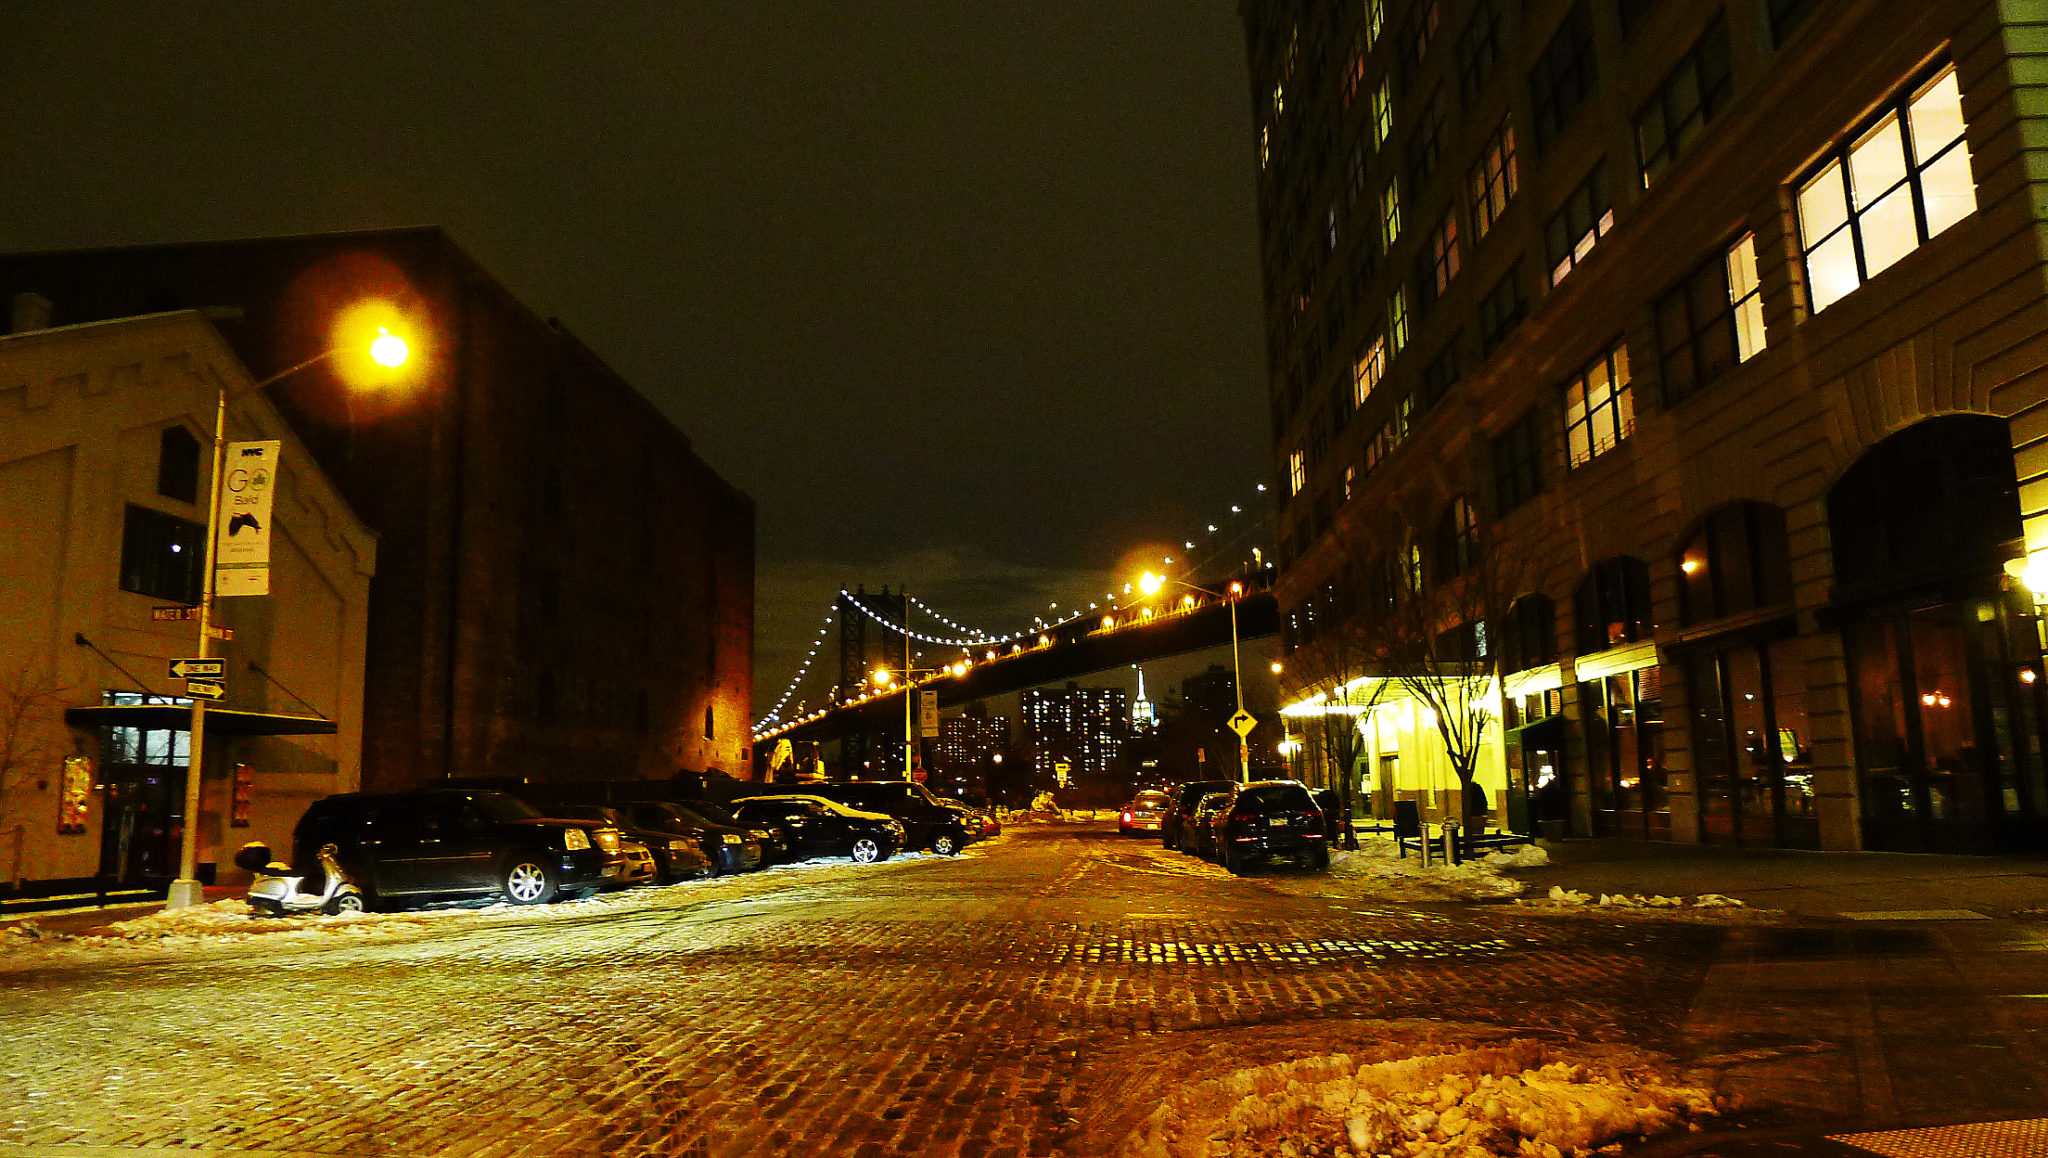 Manhattan Bridge sedd från Dumbo, Brooklyn.